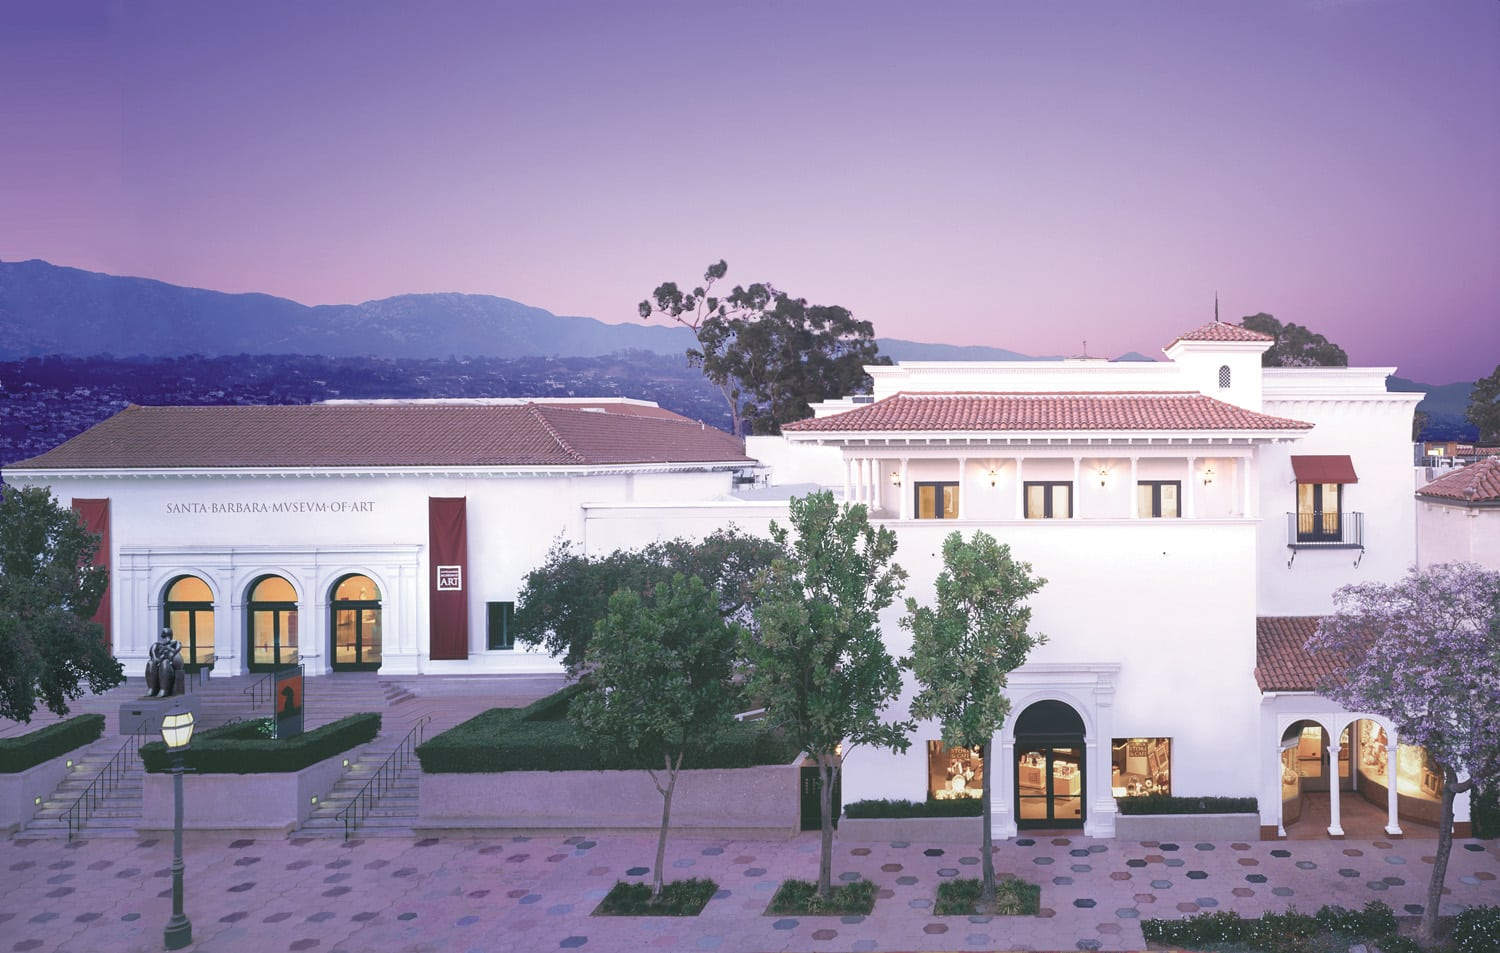 Exterior of Santa Barbara Museum of Art amidst purple skies and distant mountains